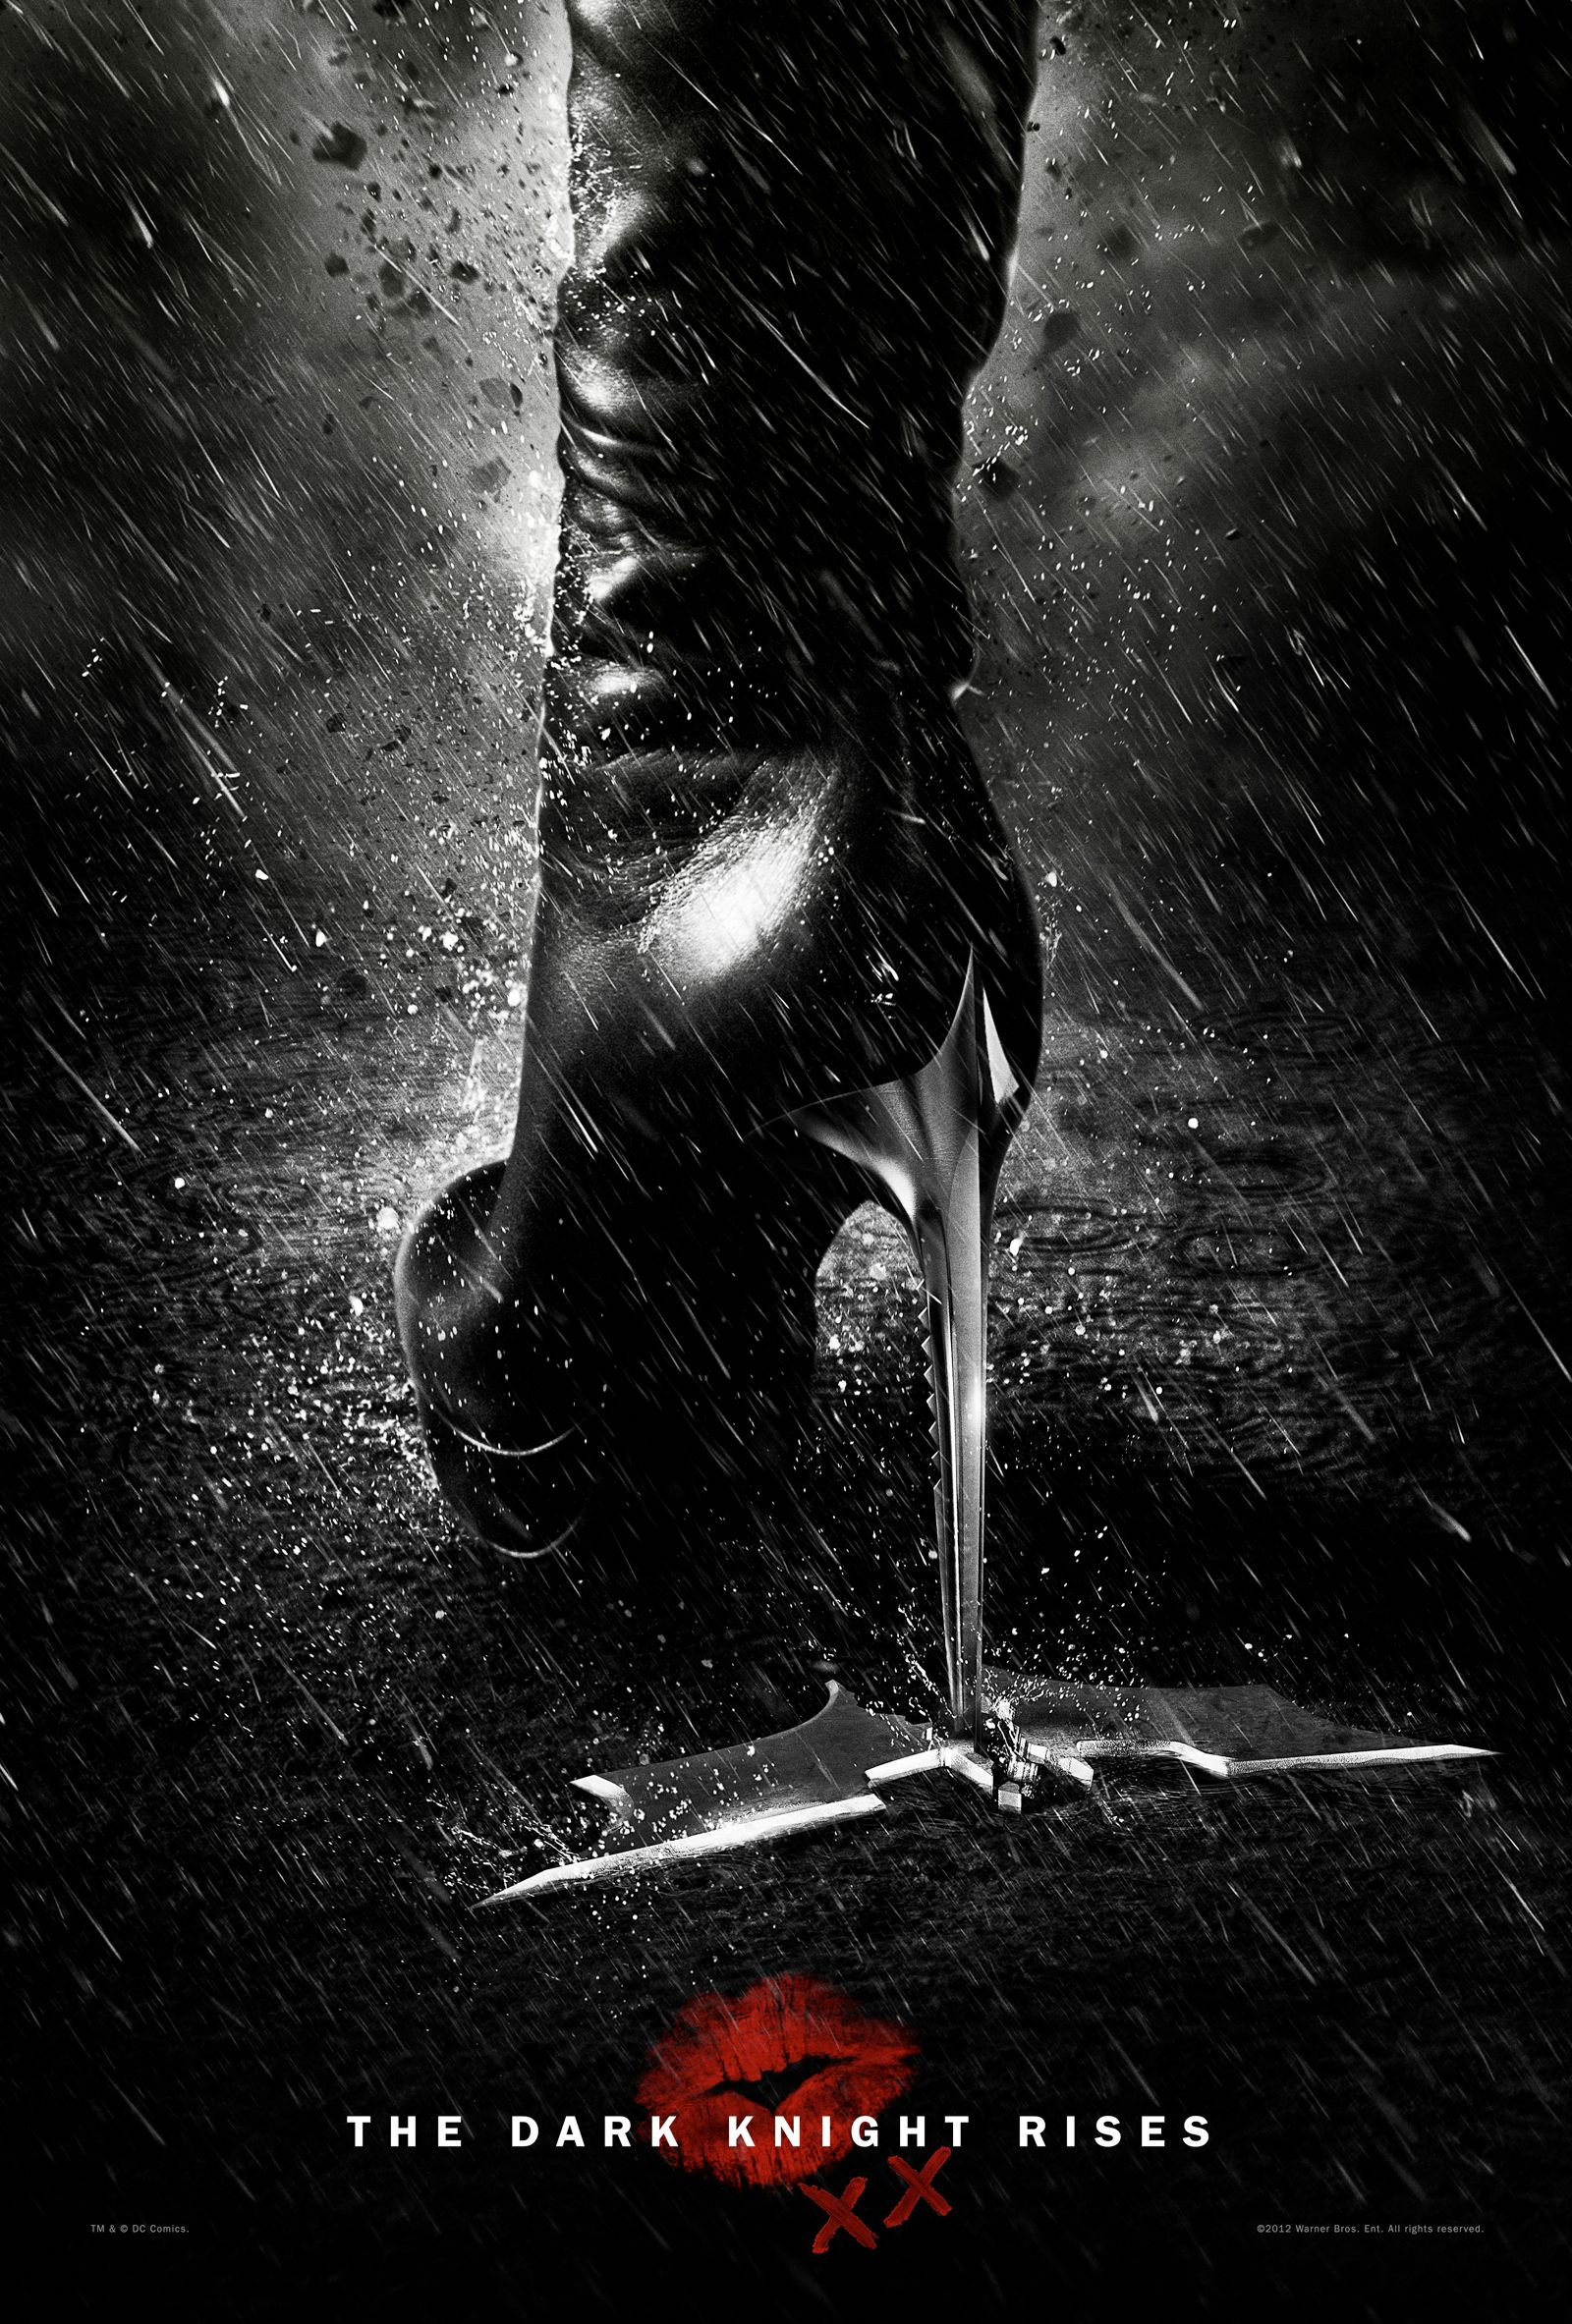 THE DARK KNIGHT RISES Secret Catwoman Poster | Collider Joseph Gordon Levitt Nightwing